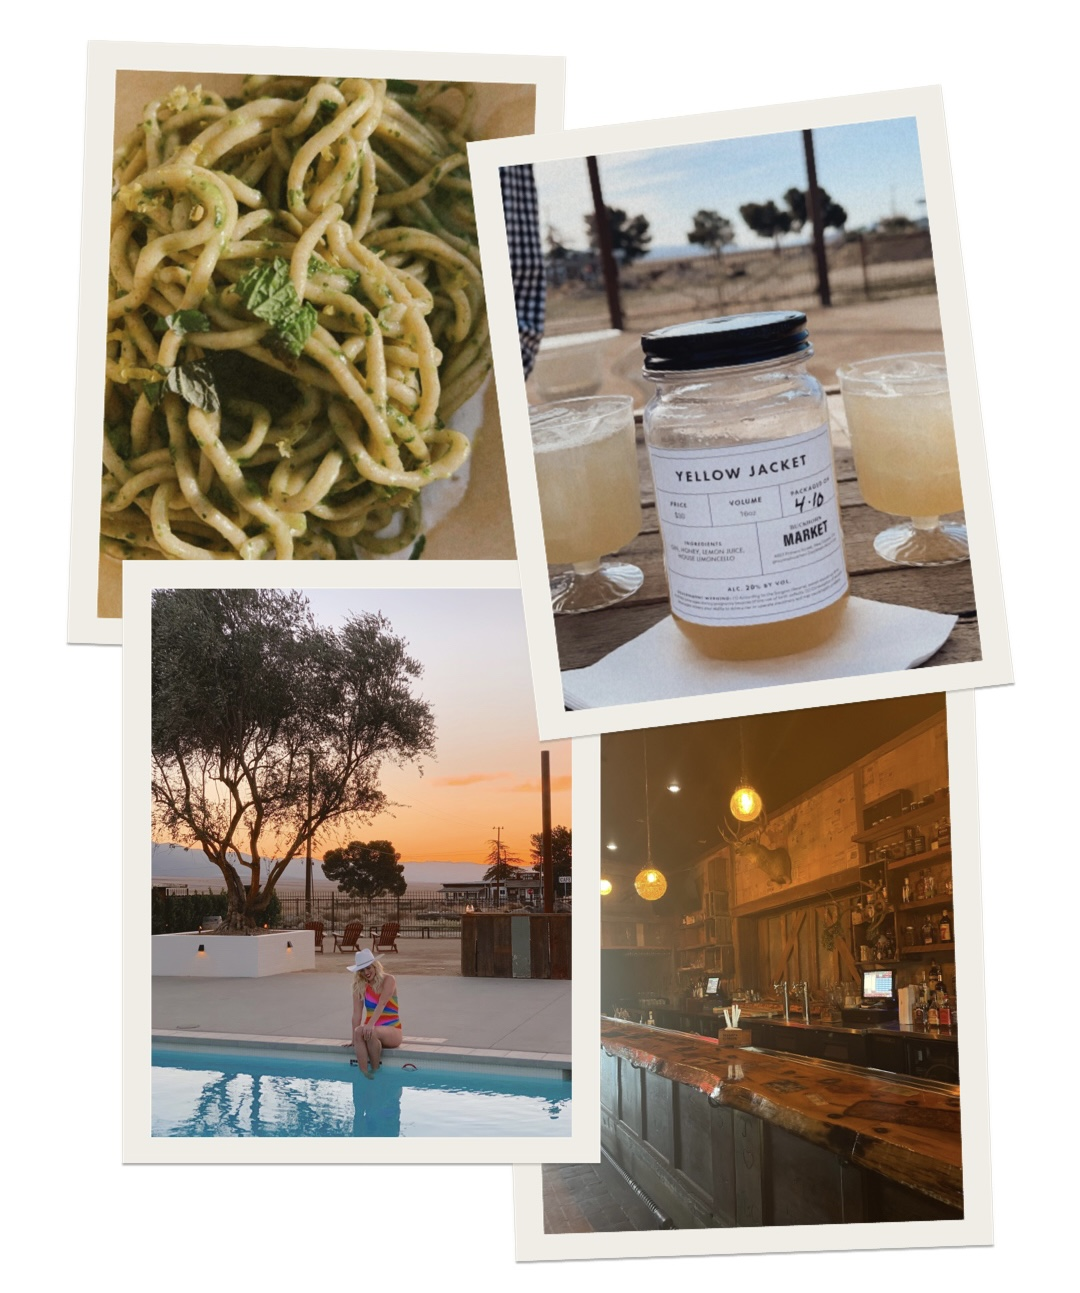 collage of images in Cuyama Buckhorn with food, swimming pool, and bar